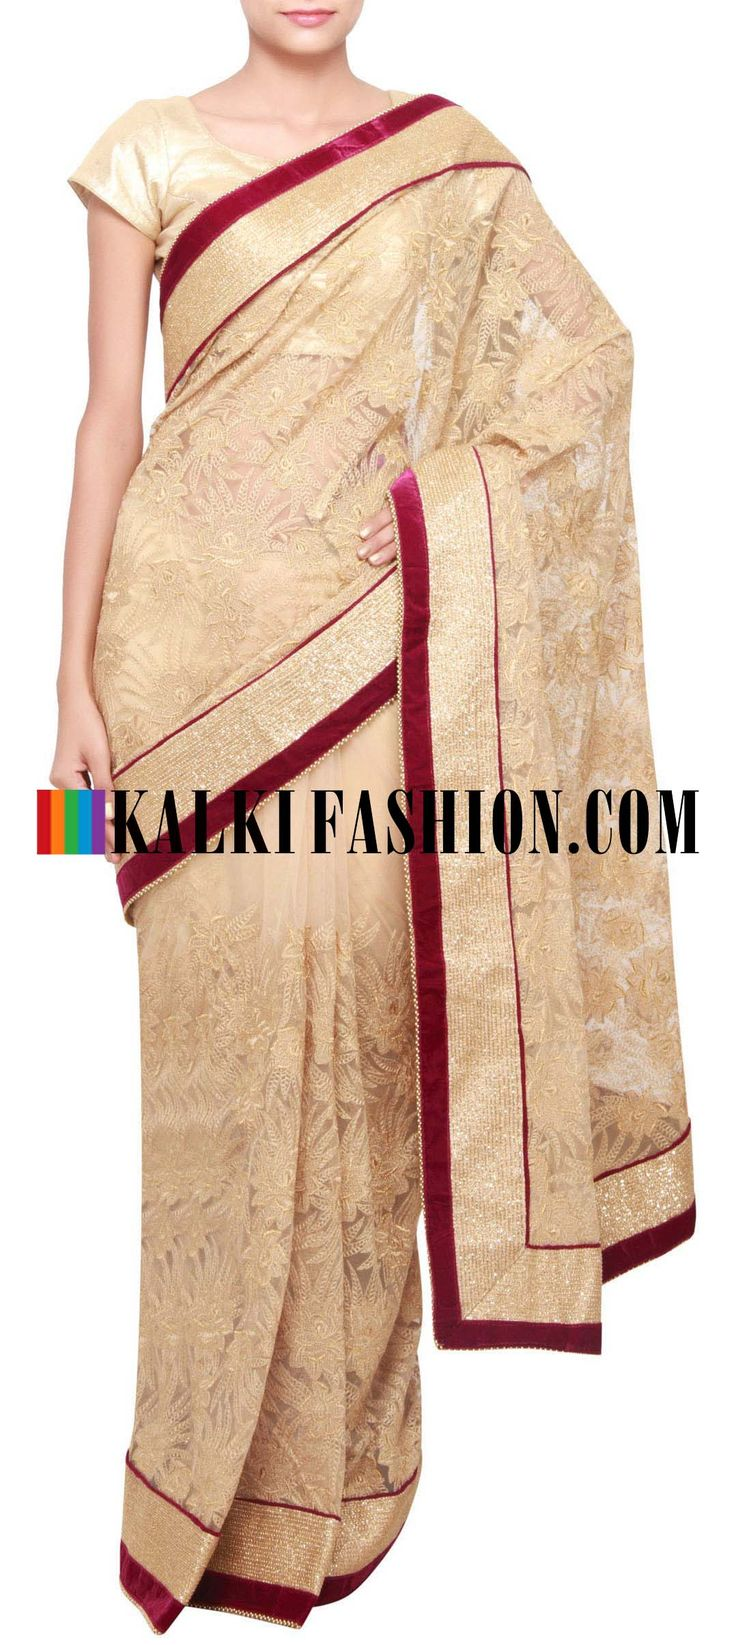 Get this beautiful golden saree here: http://www.kalkifashion.com/beige-saree-embellished-in-zari-embroidery-only-on-kalki.html Free shipping worldwide. #50ShadesOfGold